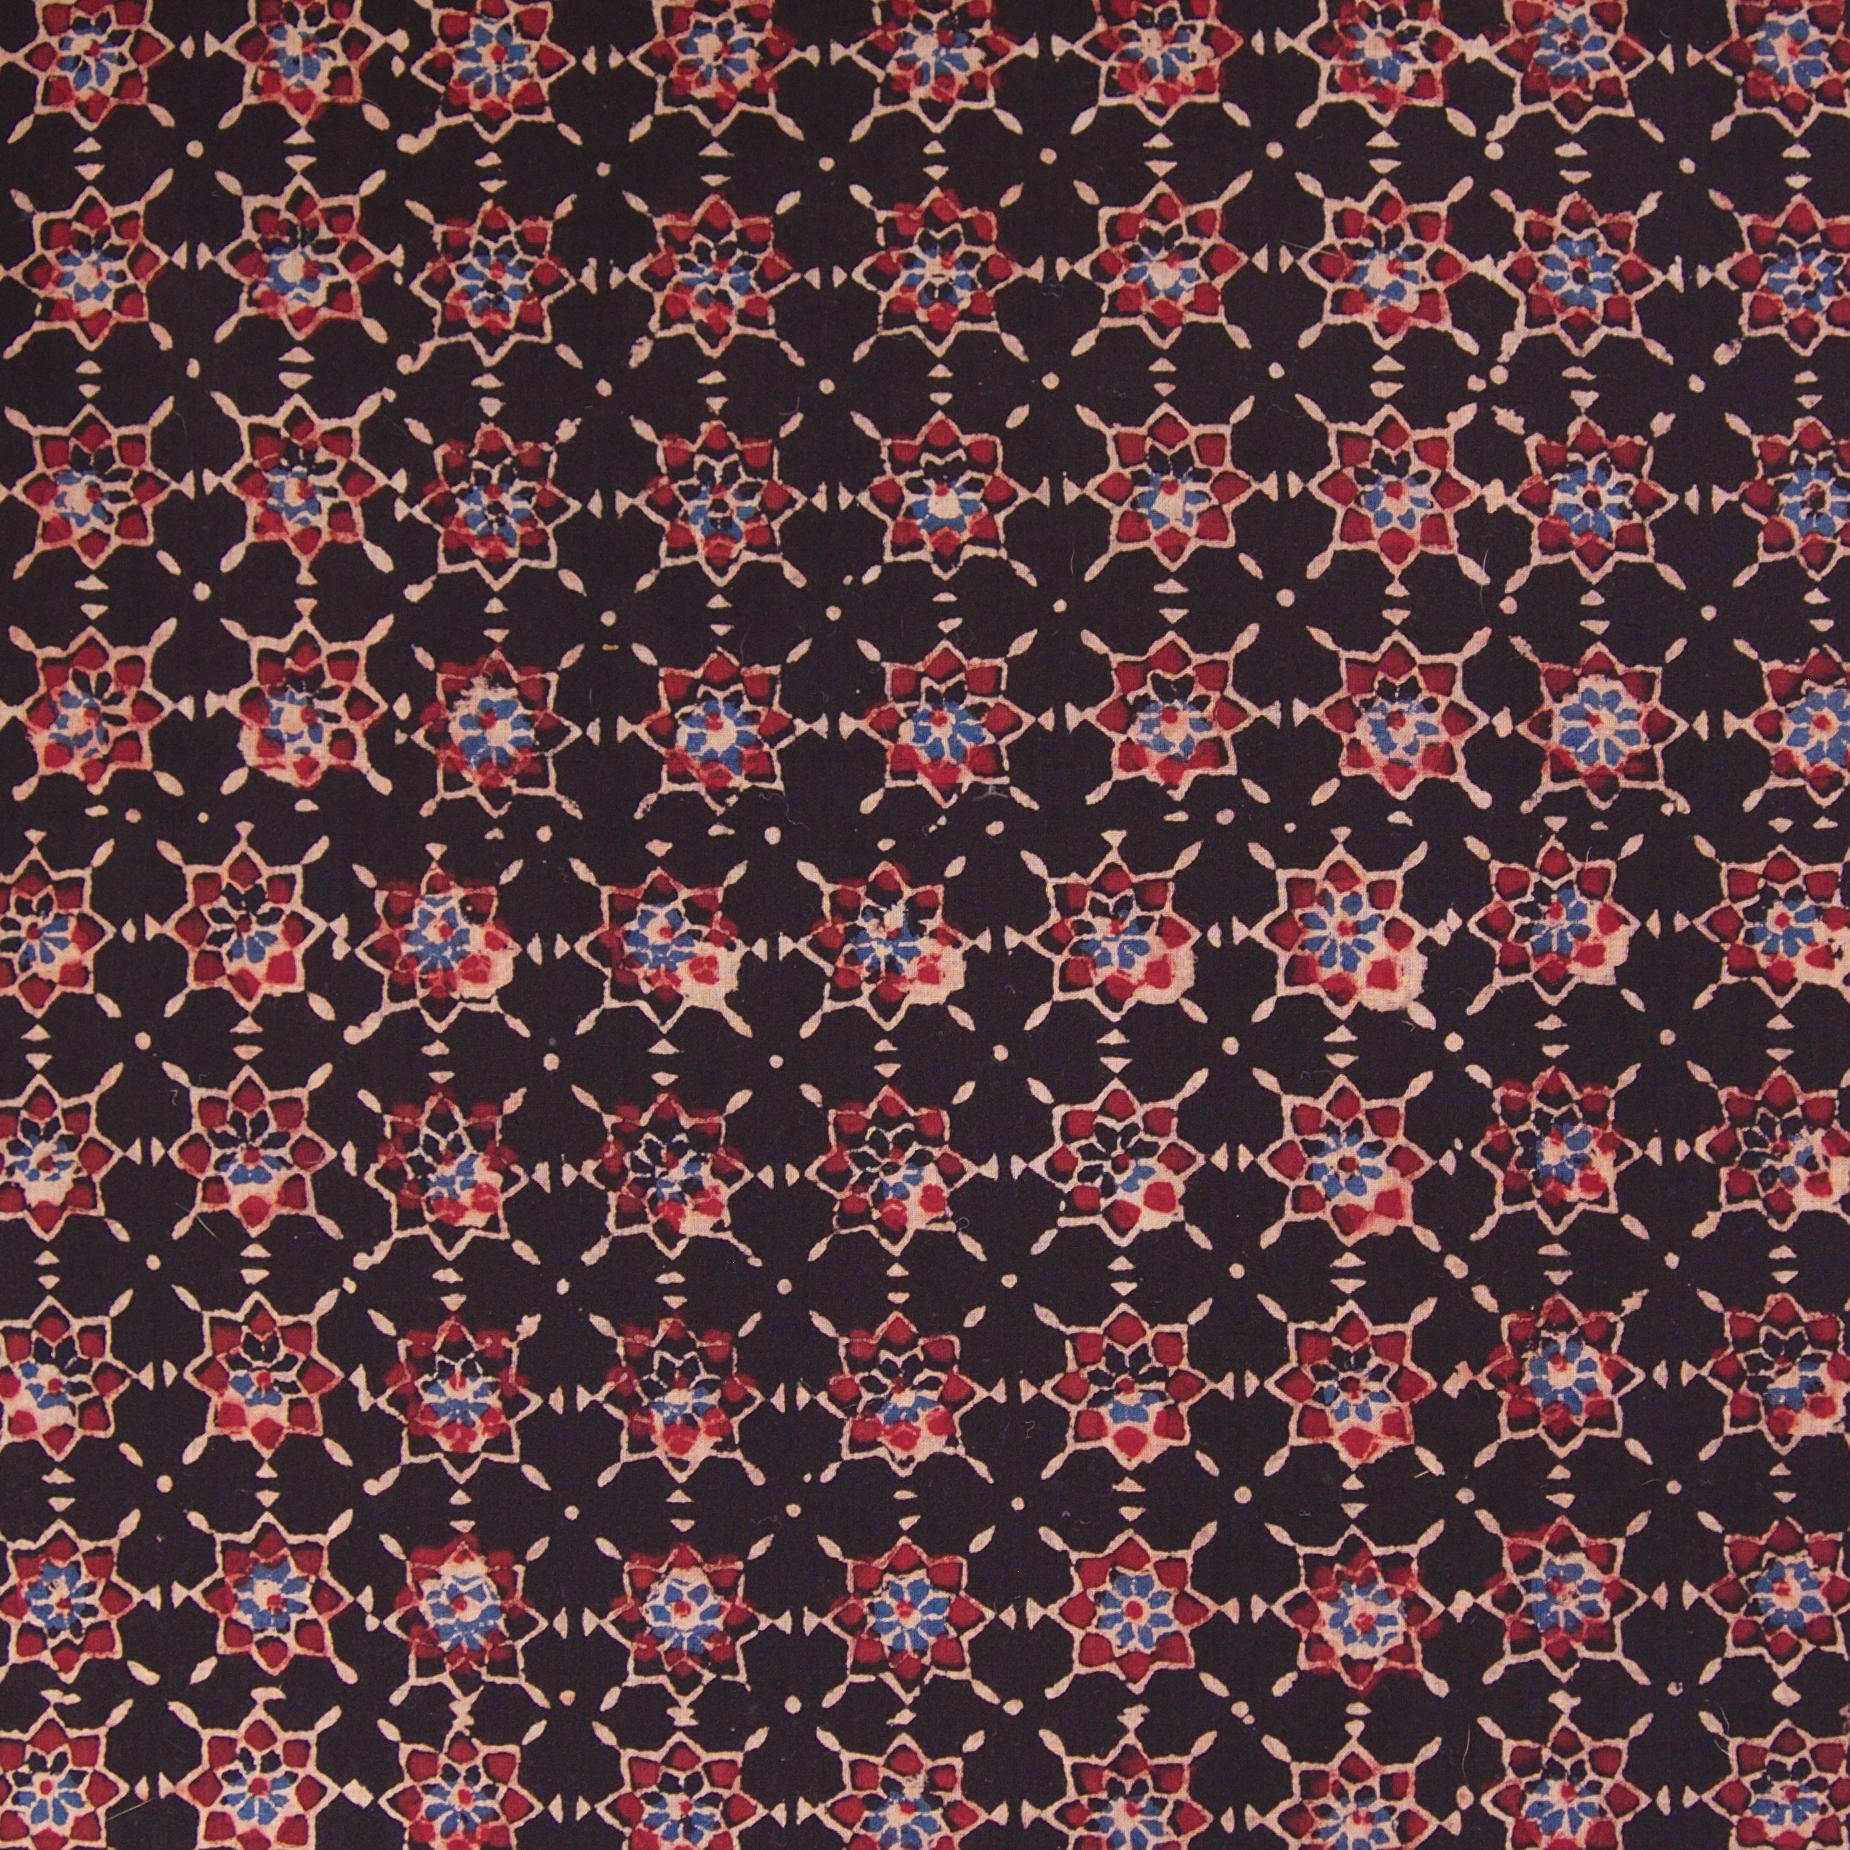 Block Printed Fabric, 100% Cotton, Ajrak Design: Iron Black Base, Red, Blue Starburst. Close Up